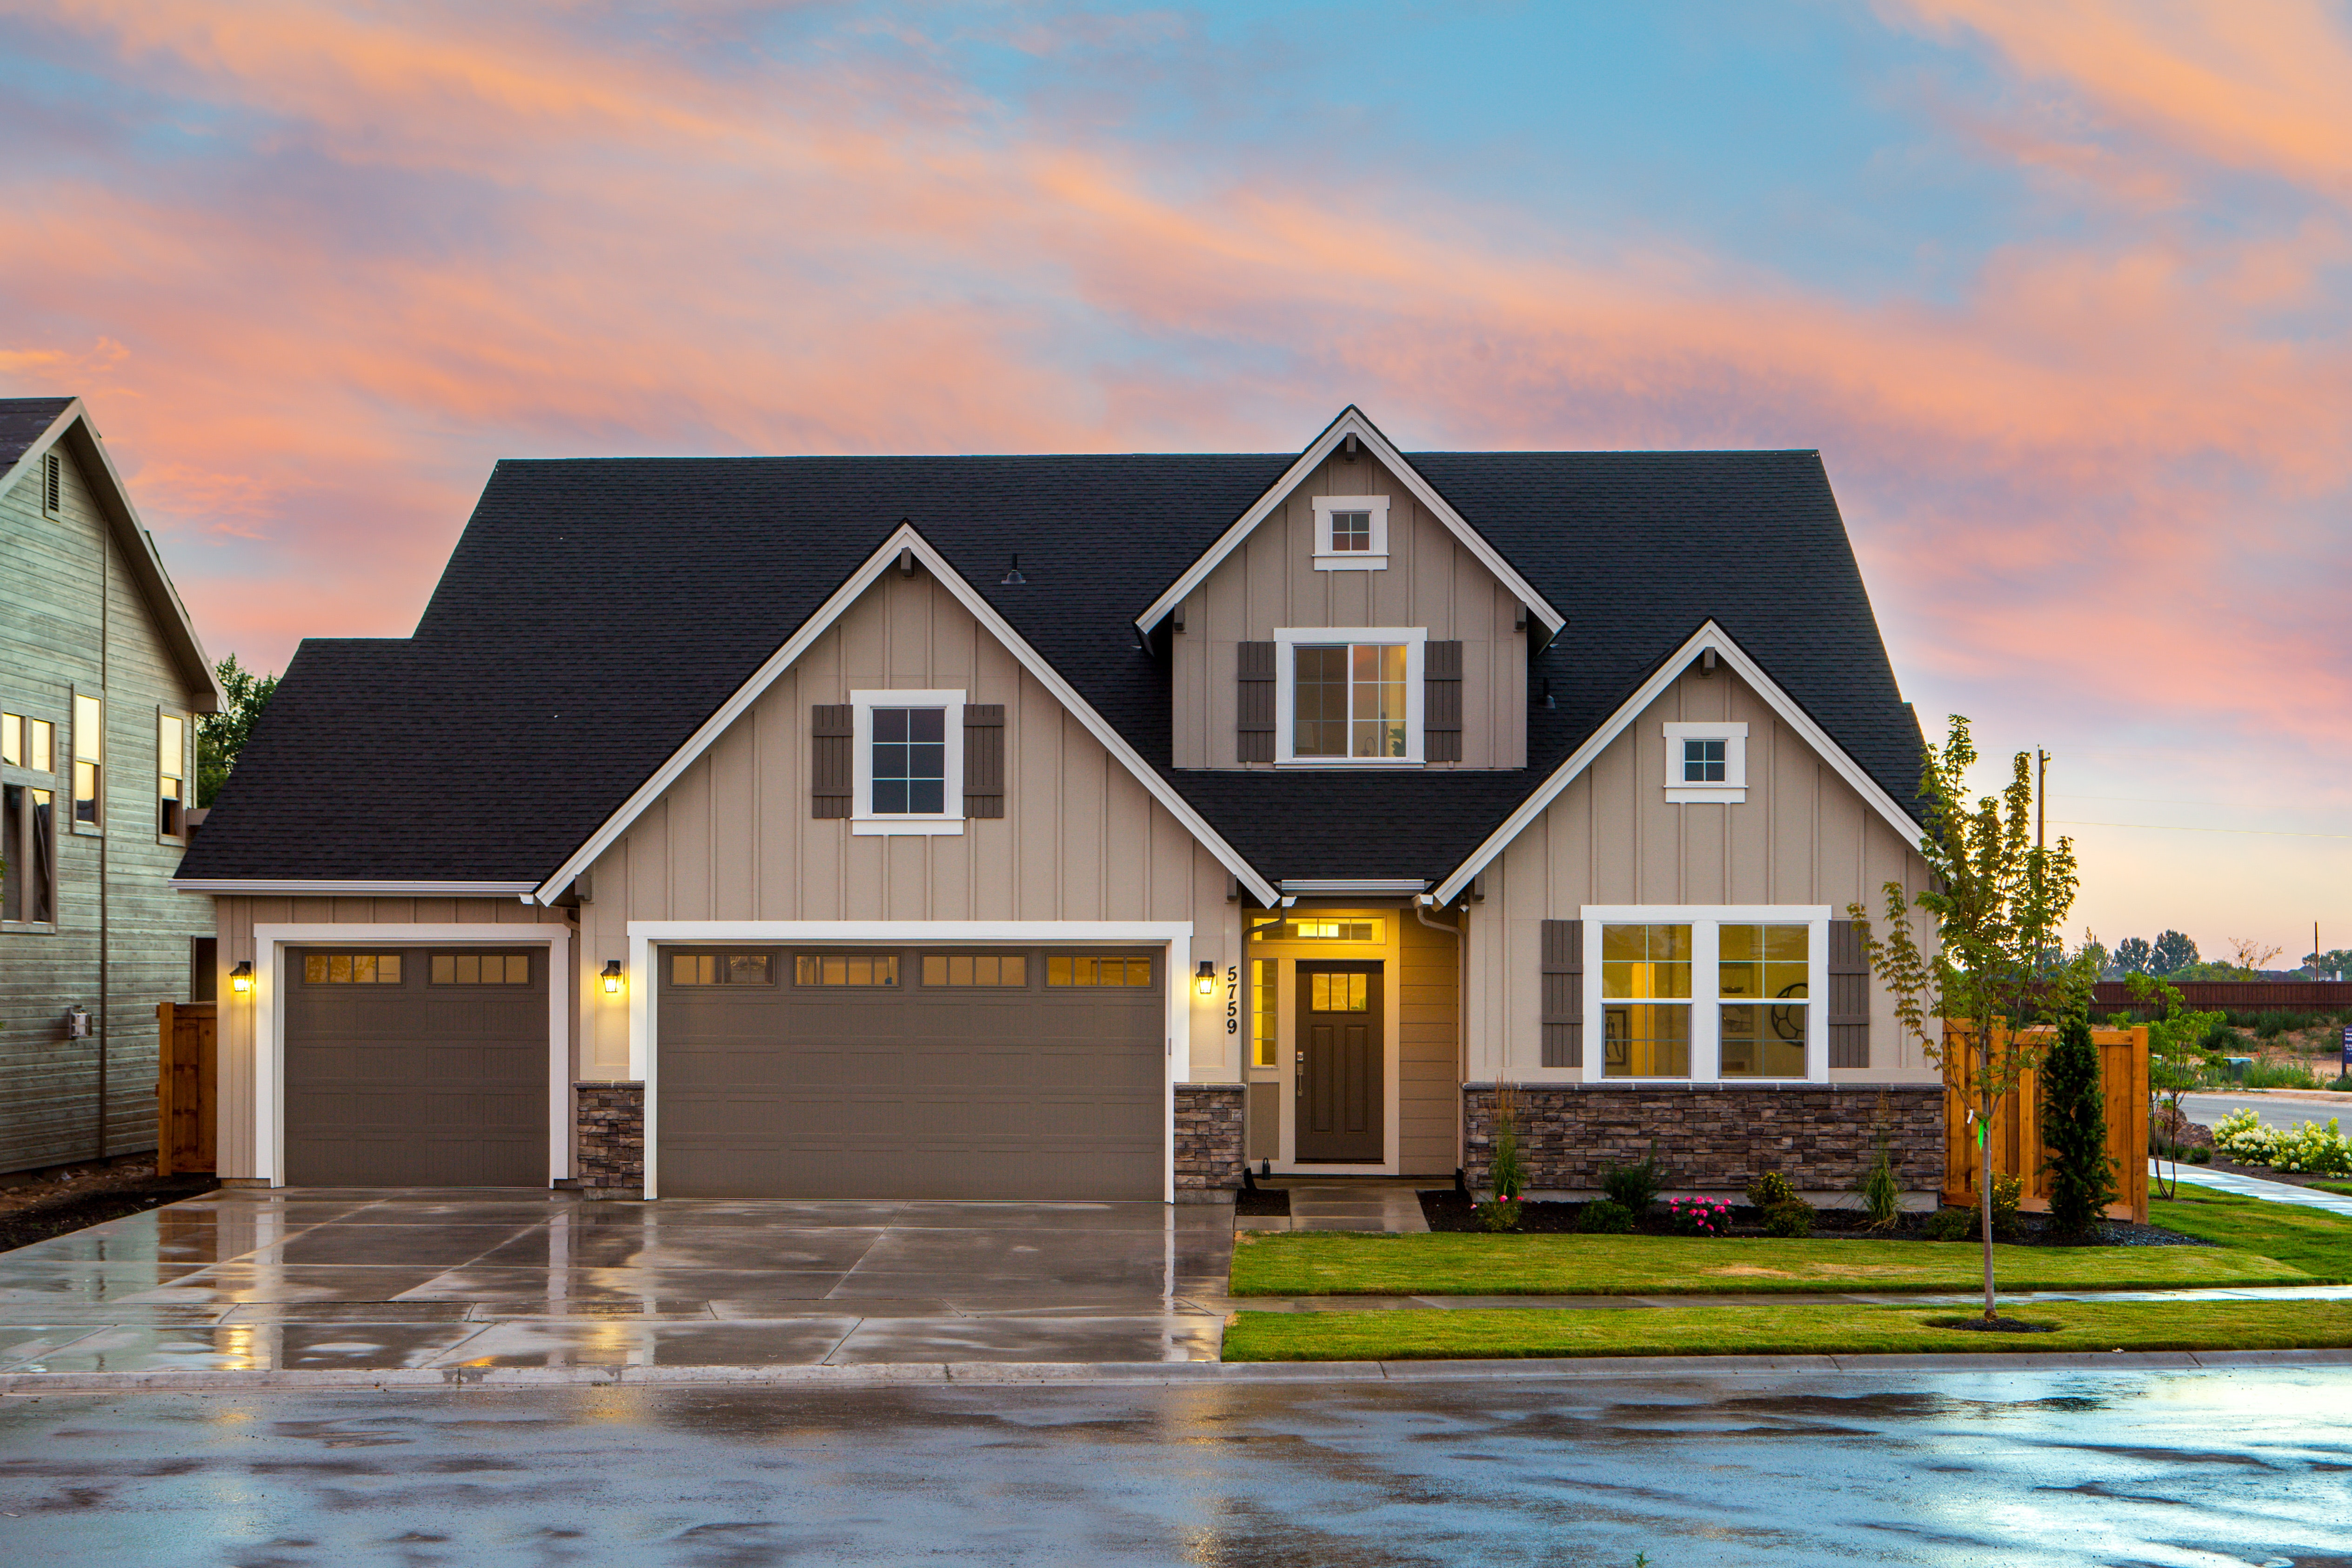 Mortgage Rates Plunge to 8-Year Low Amid Coronavirus Fears